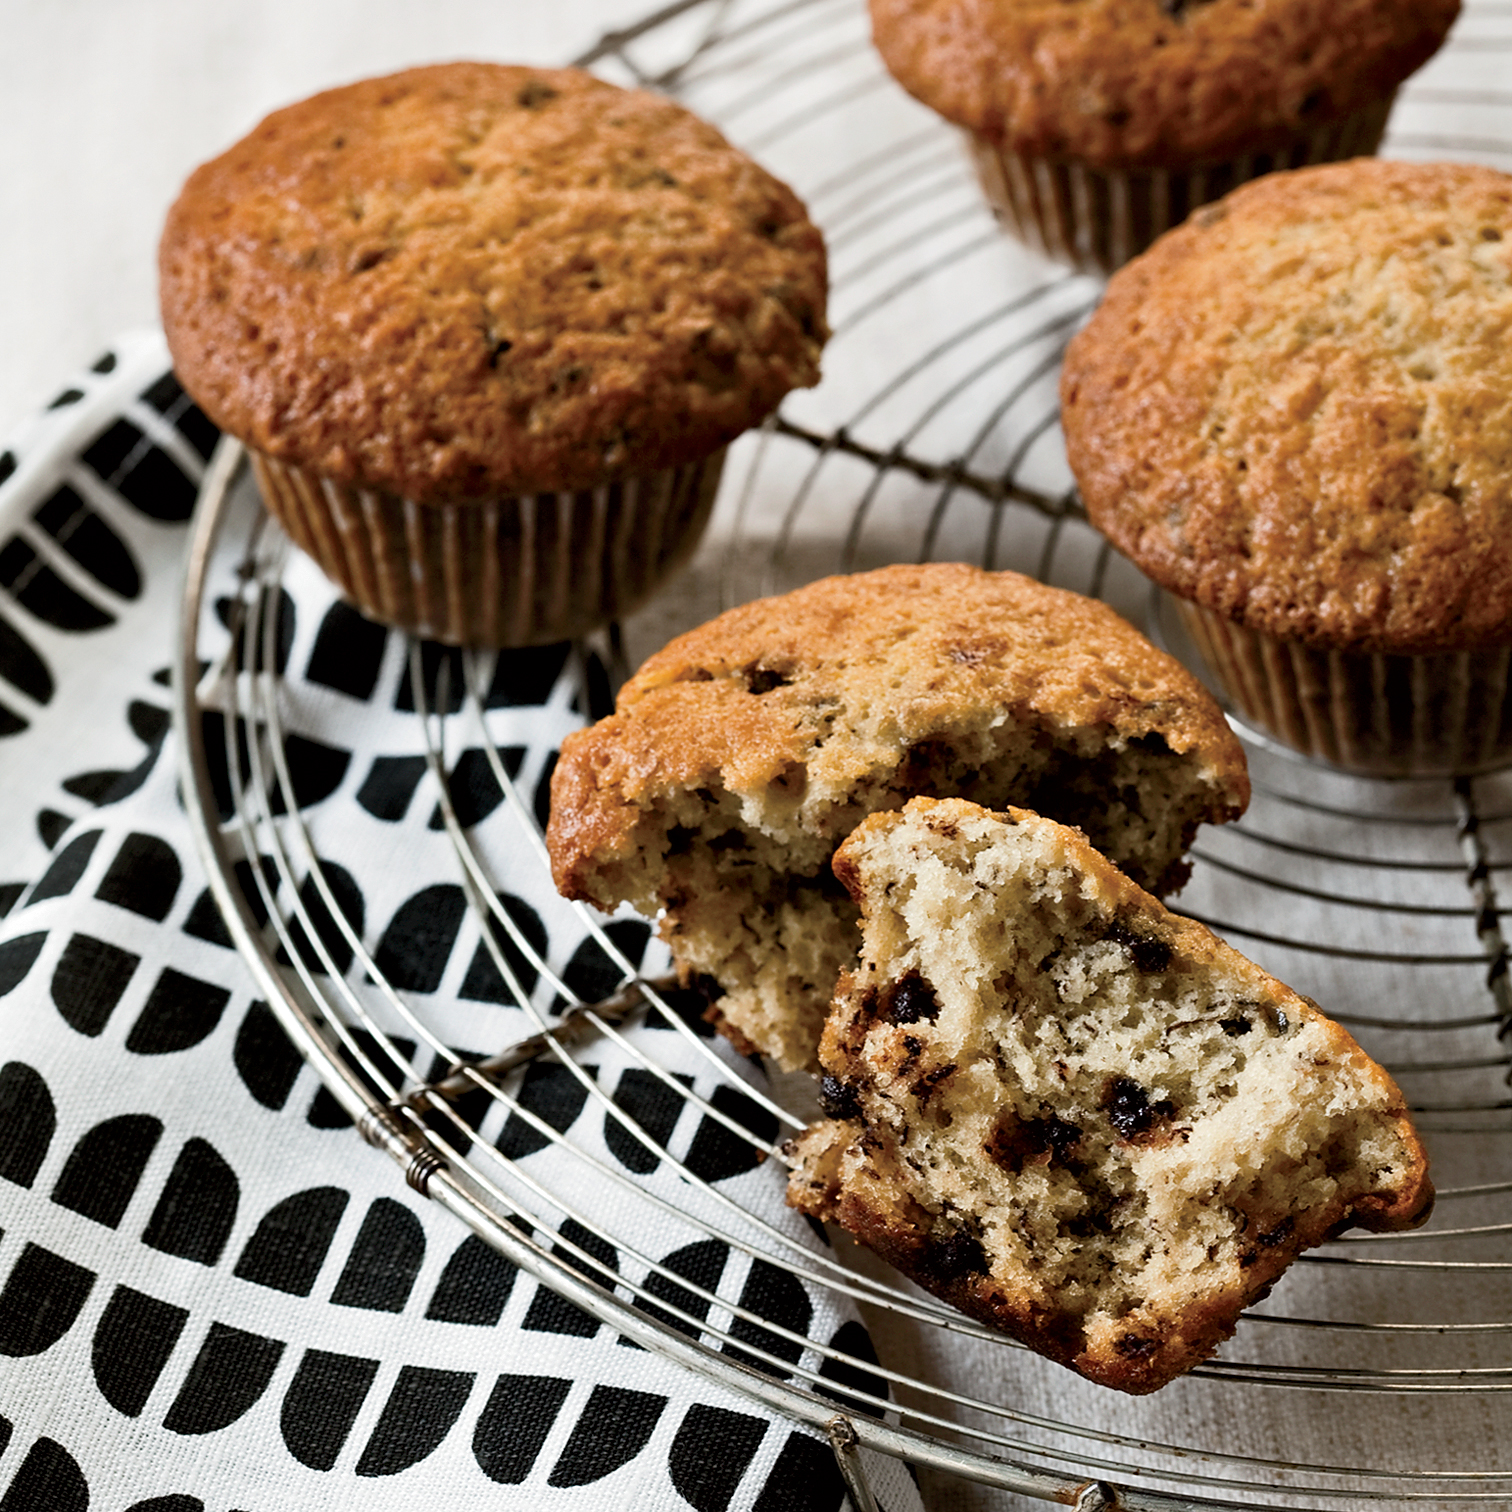 200912-r-banana-chocolate-muffins.jpg